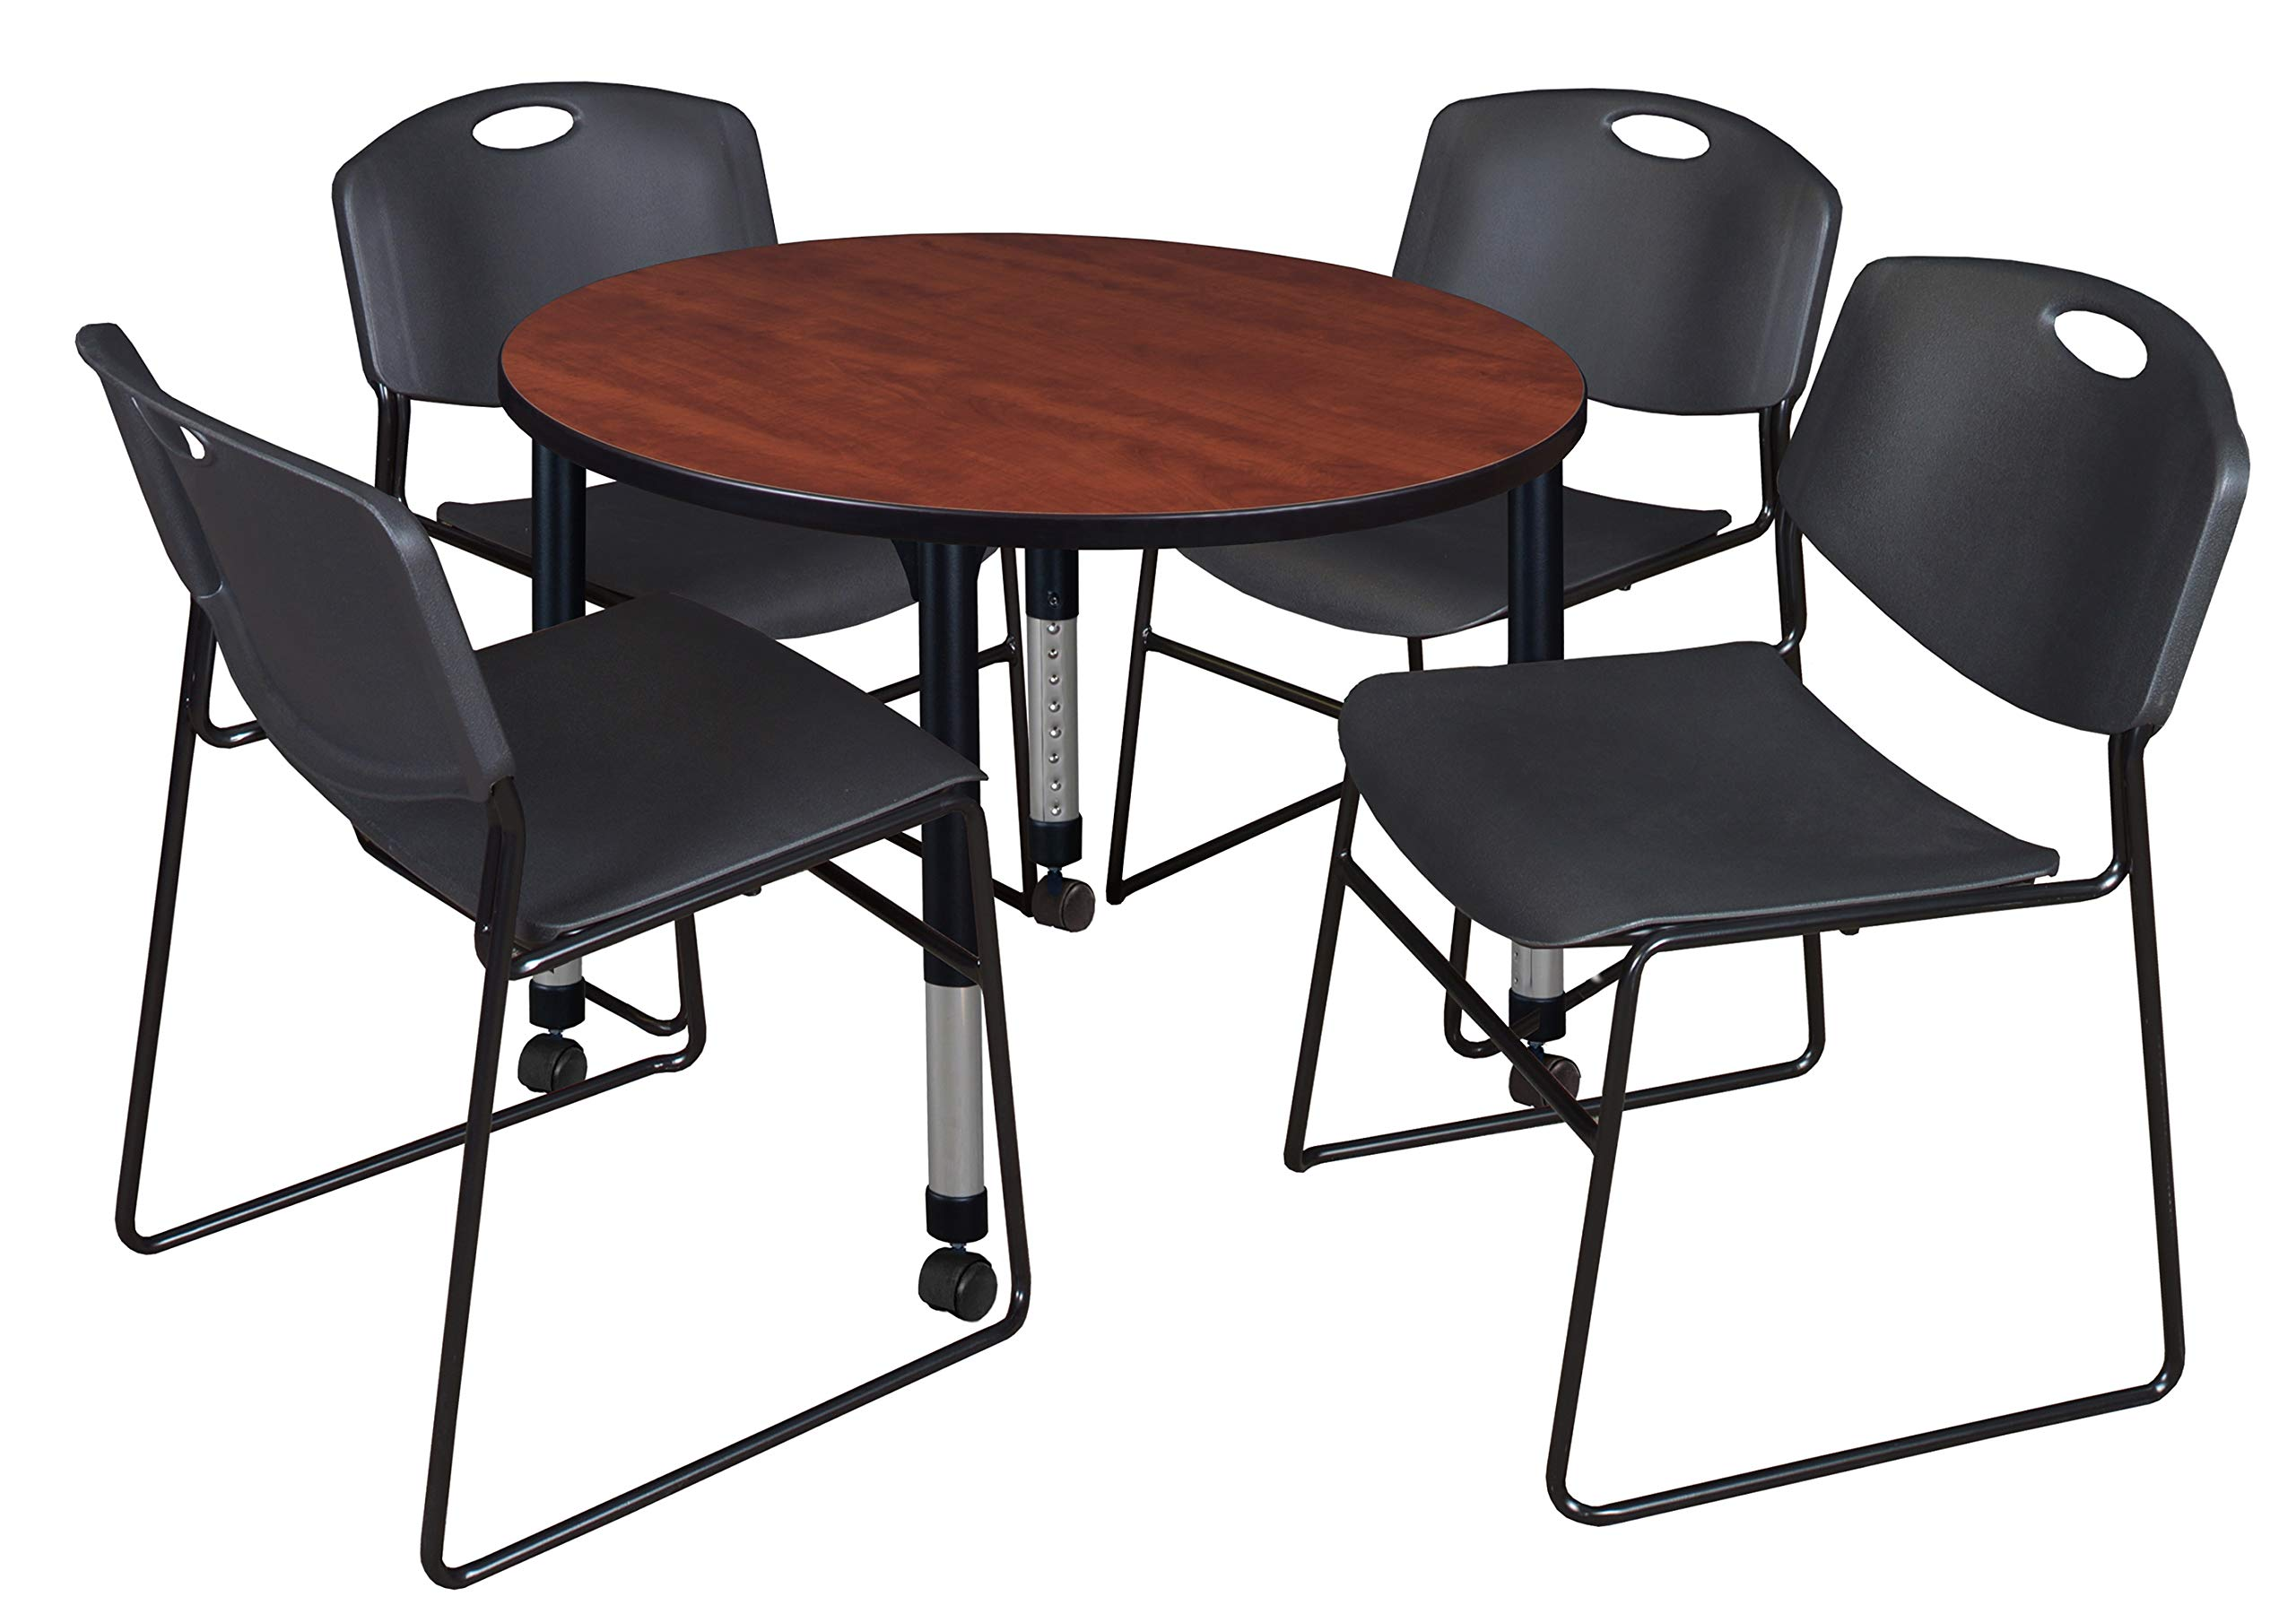 Regency TB42RNDCHAPCBK44BK Kee Height Adjustable Mobile Classroom Table Set with Four Zeng Chairs 42'' Cherry/Black